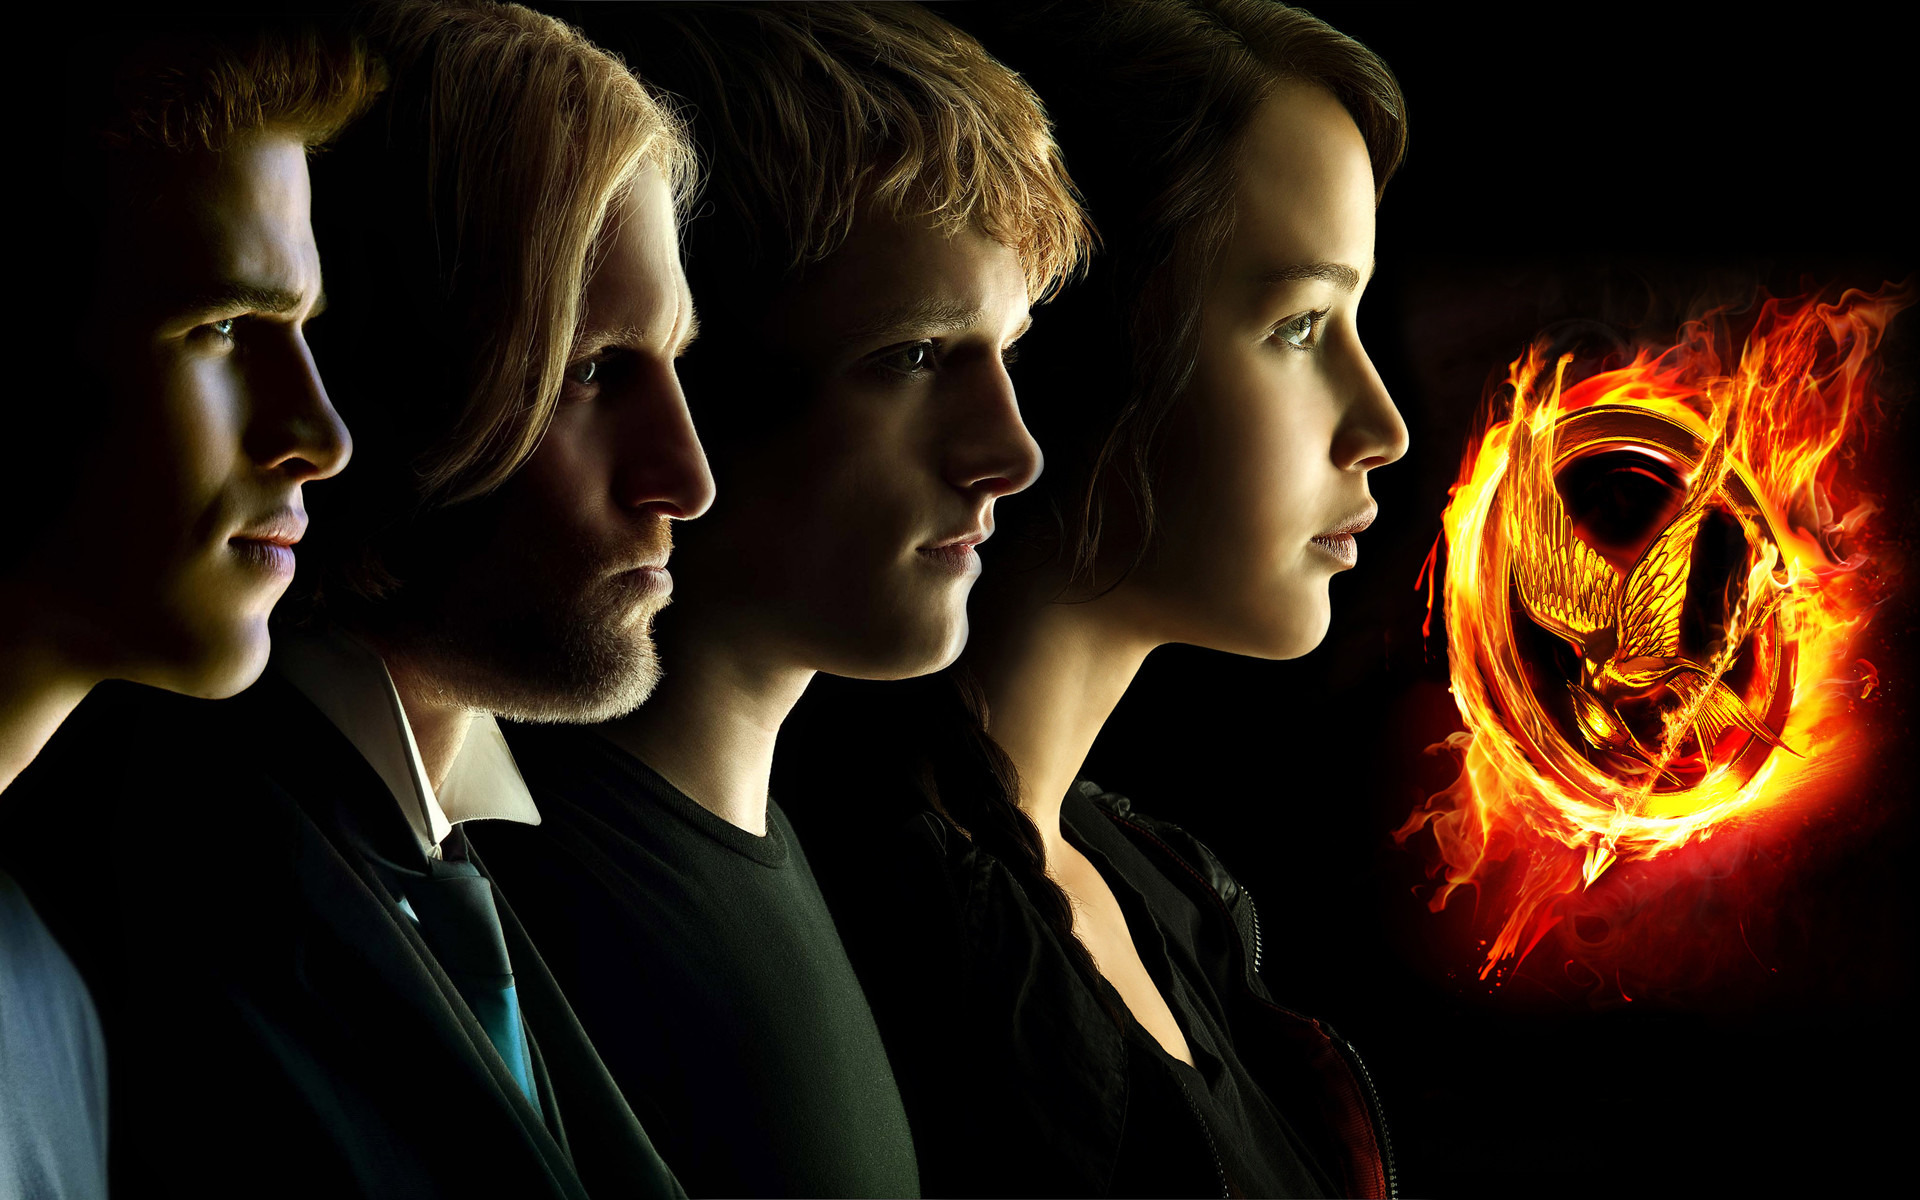 1920x1200 The Hunger Games Movie